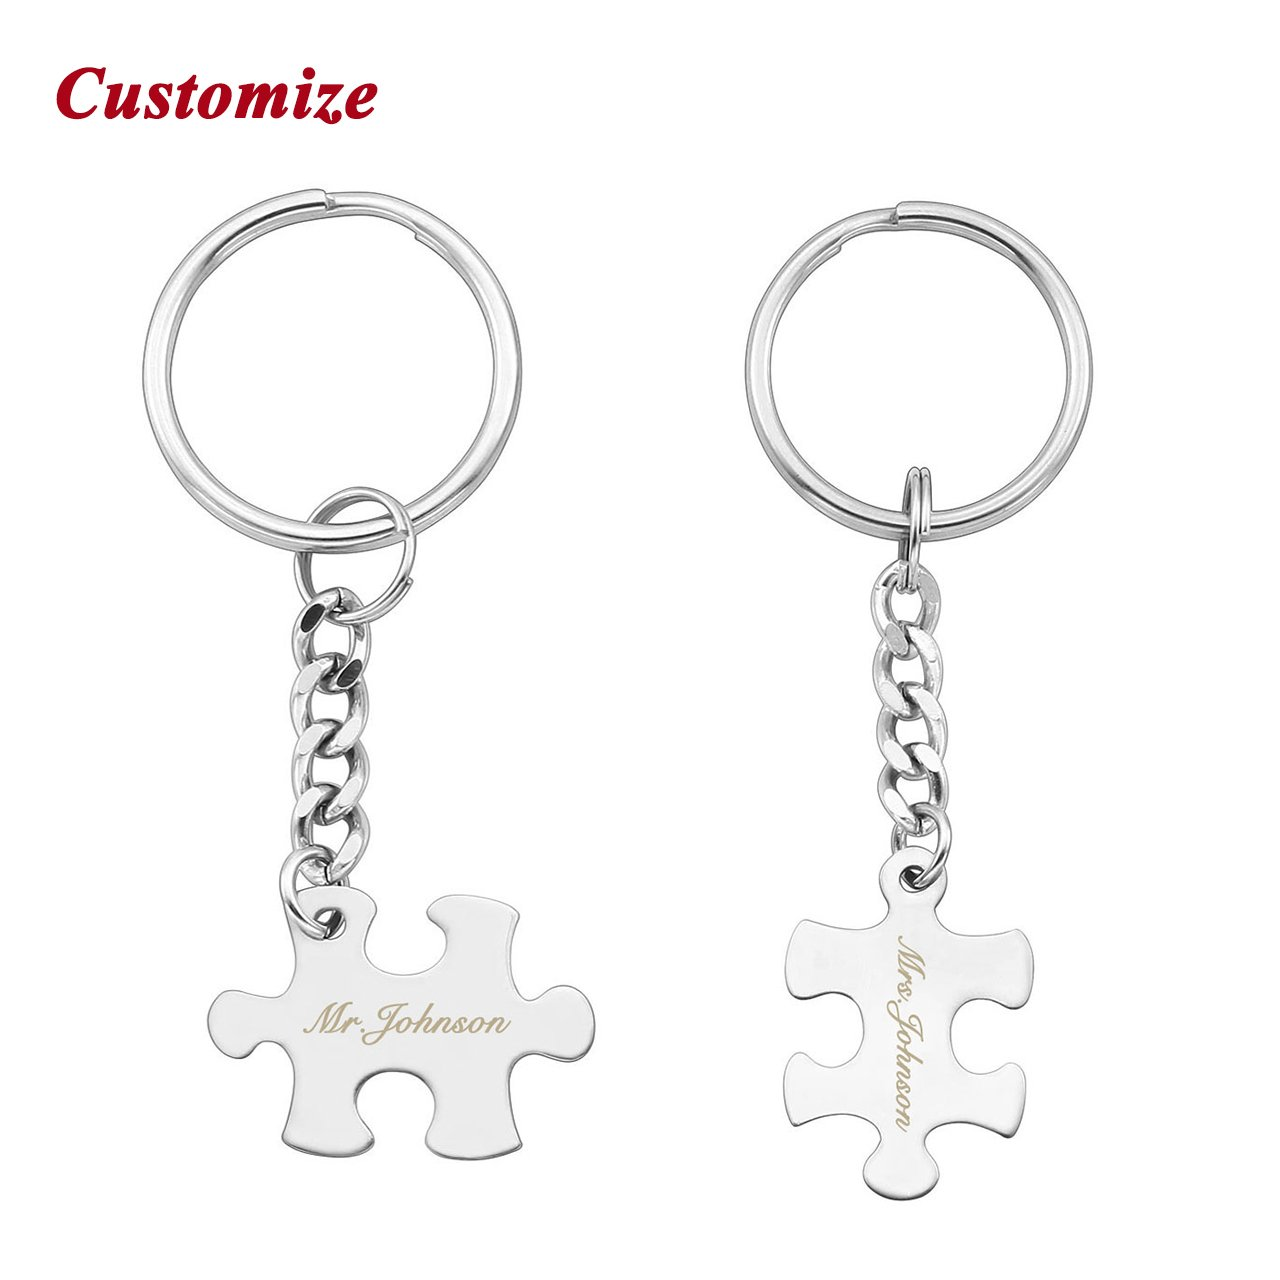 PiercingJ 2PCS Personalized Custom Engraved Couple Necklaces Couple Keychain  Matching Puzzle Dog Tag Pendant His and Hers Necklace Key Ring for Him Her  + ... d1535d276a